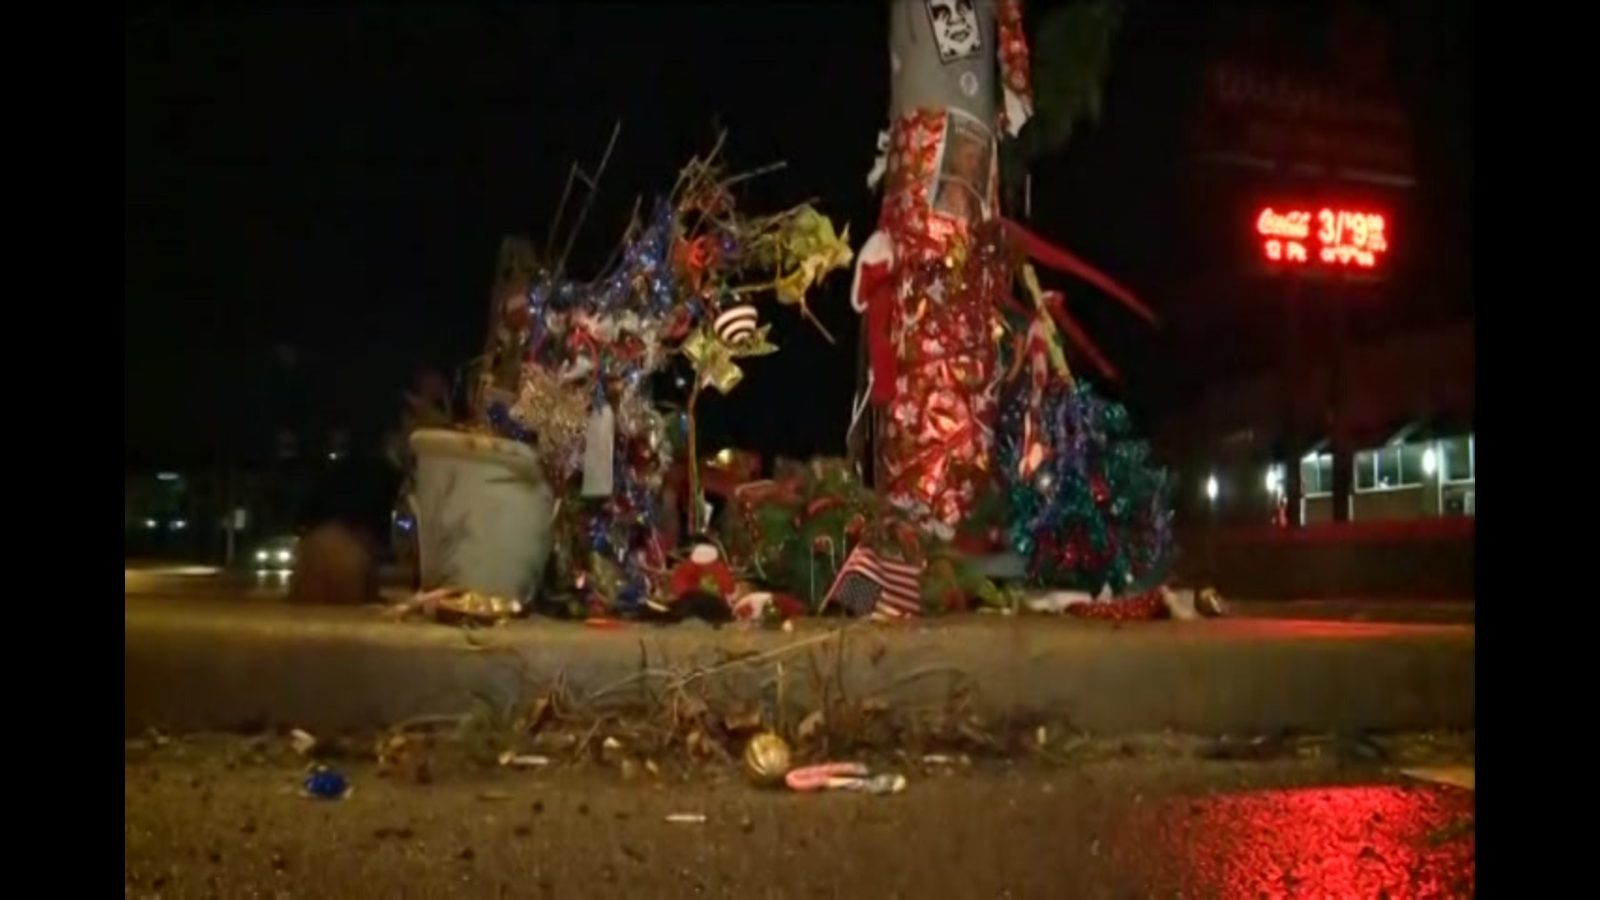 Toledo Christmas Weed.Thief Steals Christmas Weed From Ohio Traffic Island Holiday Display